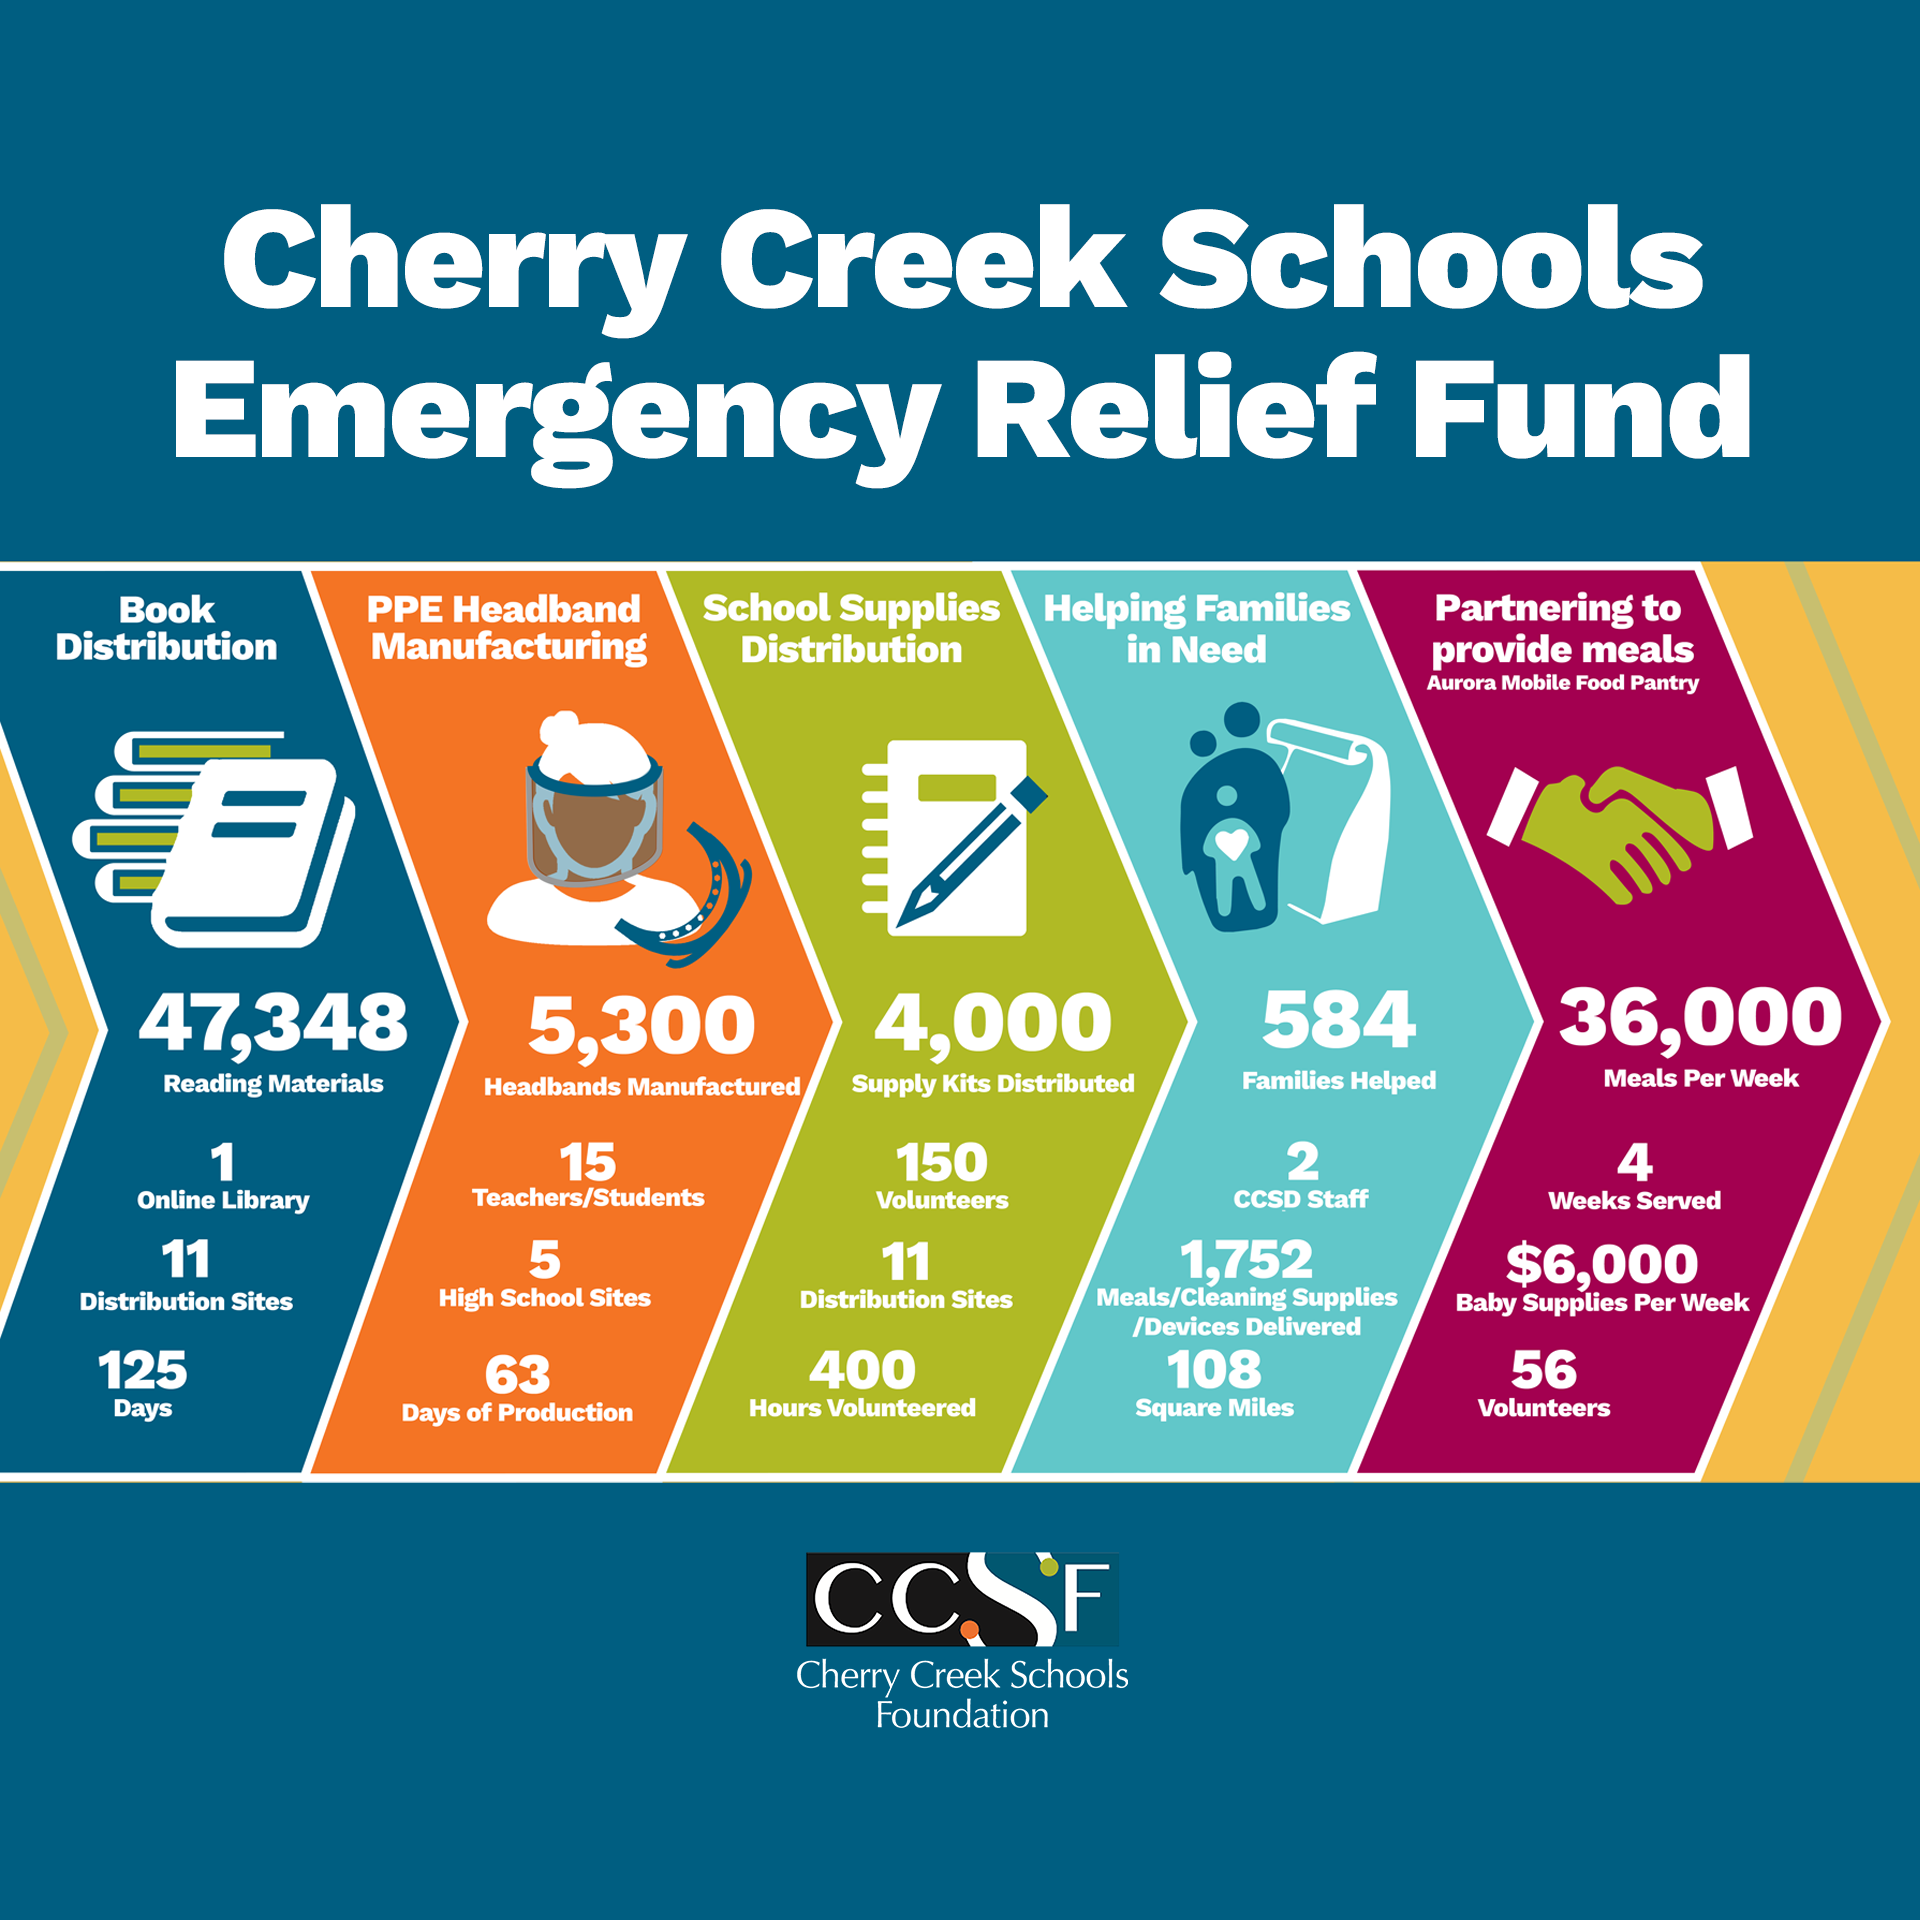 Impact: CCSD Emergency Relief Fund